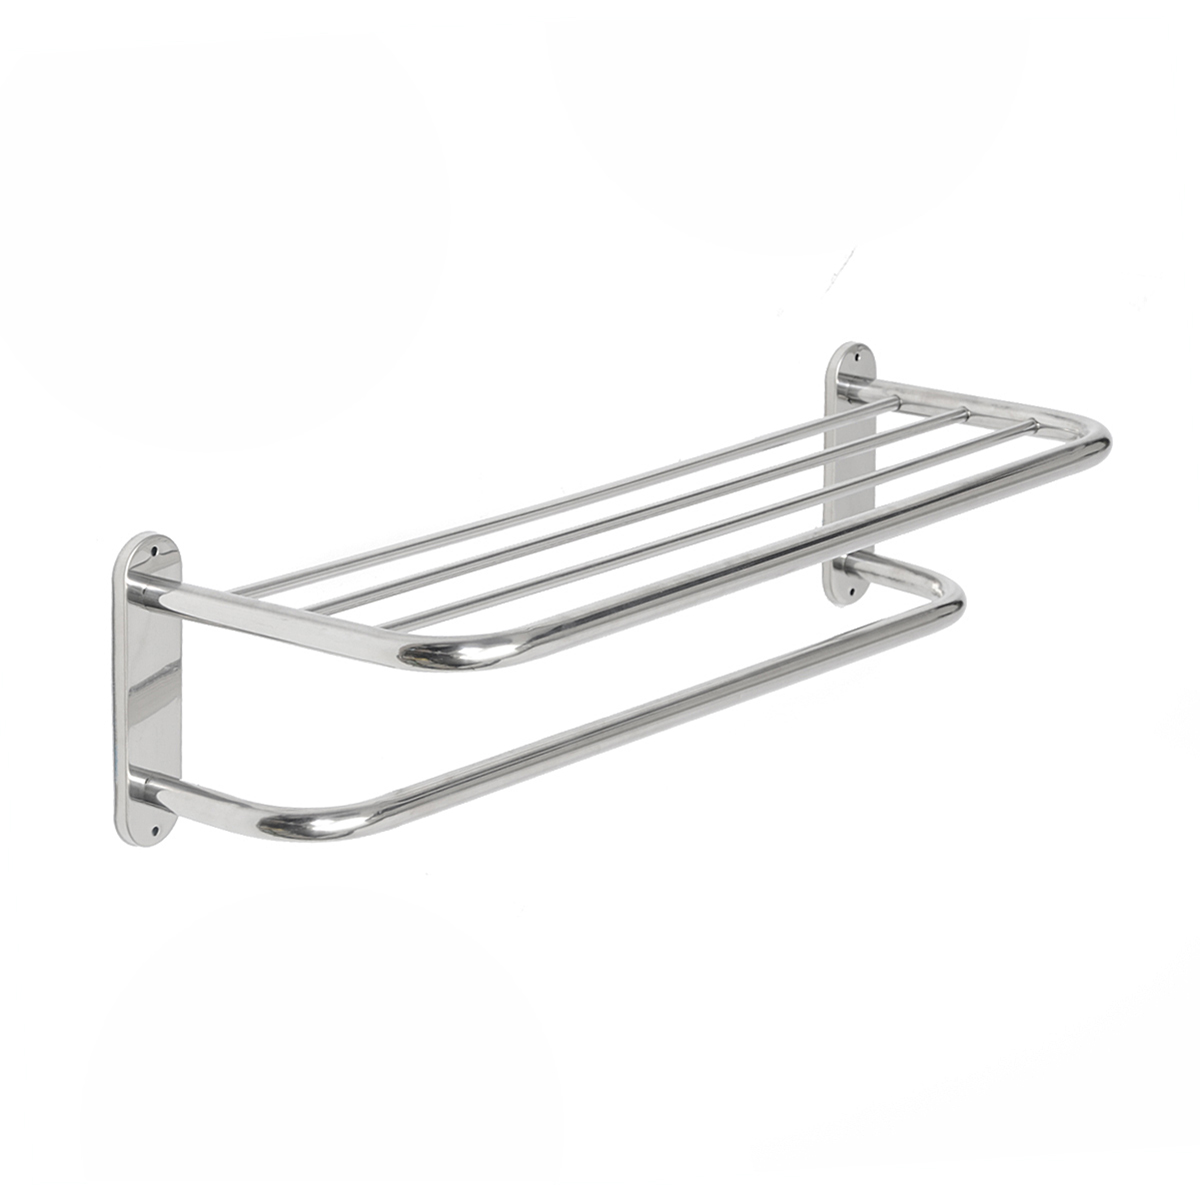 Xueqin 60cm Stainless Steel Chrome Polished Bathroom Wall Mounted Towel Rail Holder Shelf Storage Rack Double Towel Rails Bar